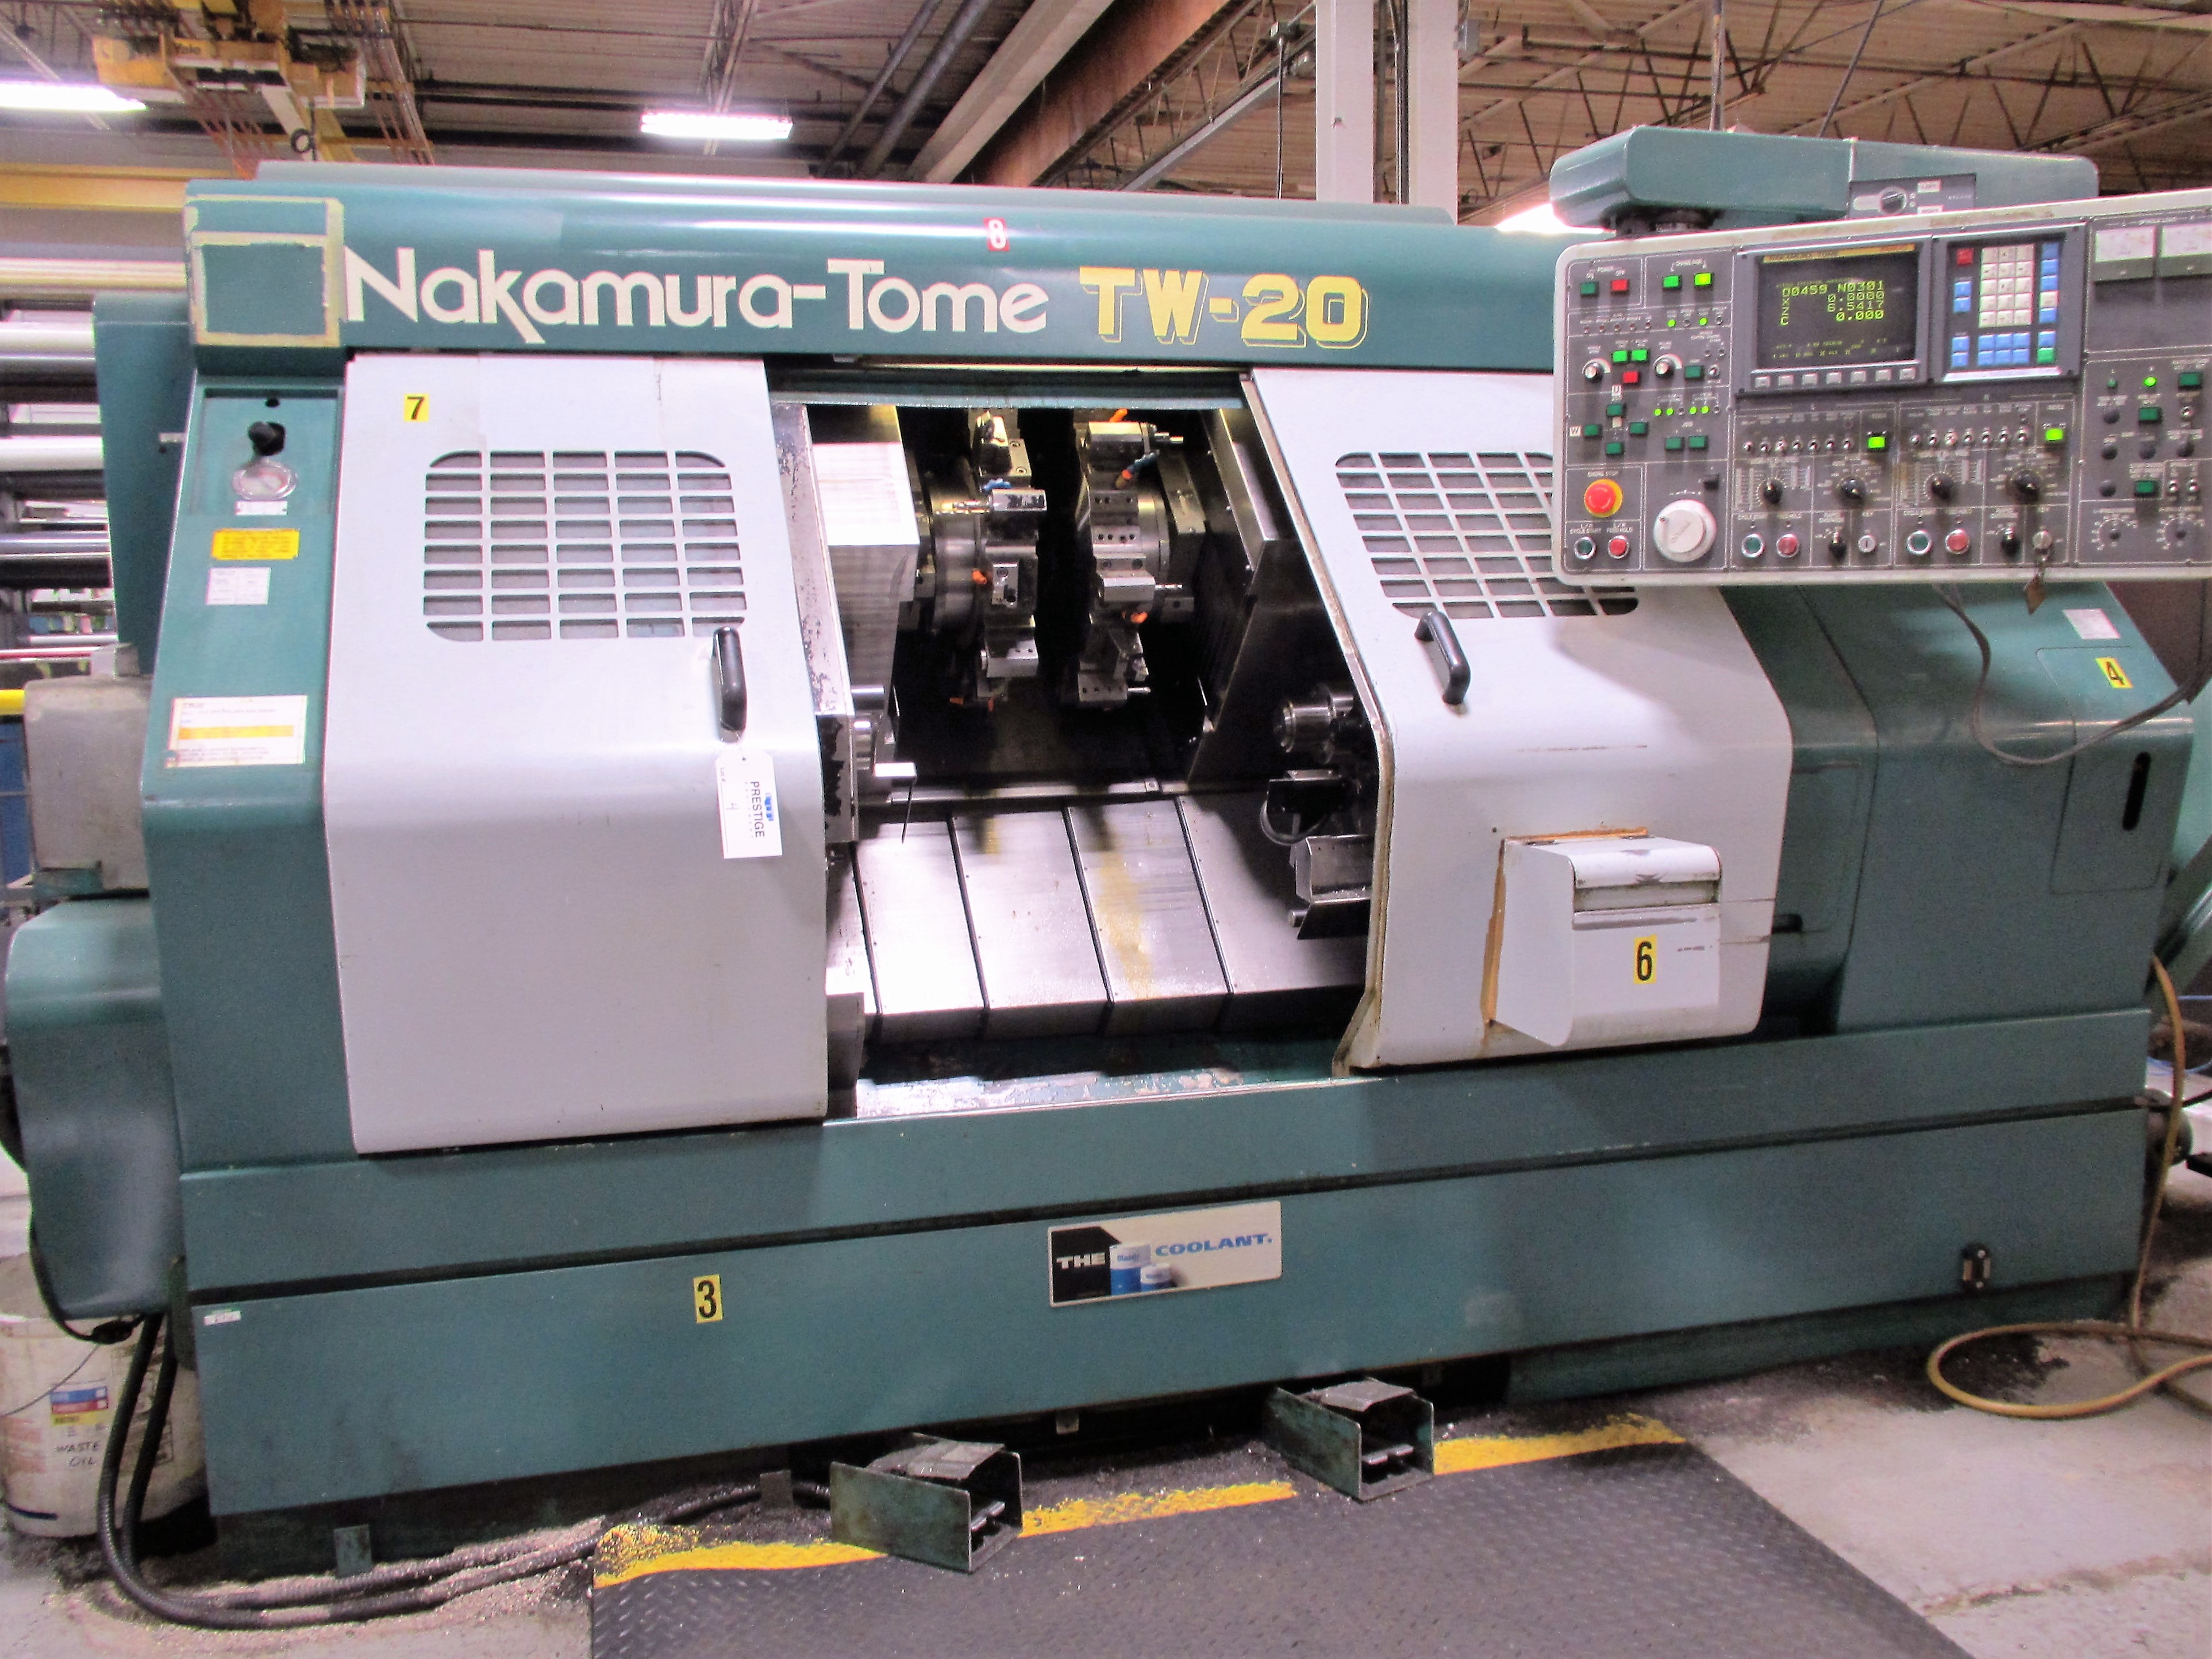 NAKAMURA TOME TW-20 6-AXIS CNC TWIN SPINDLE TURNING CENTER - Image 2 of 17